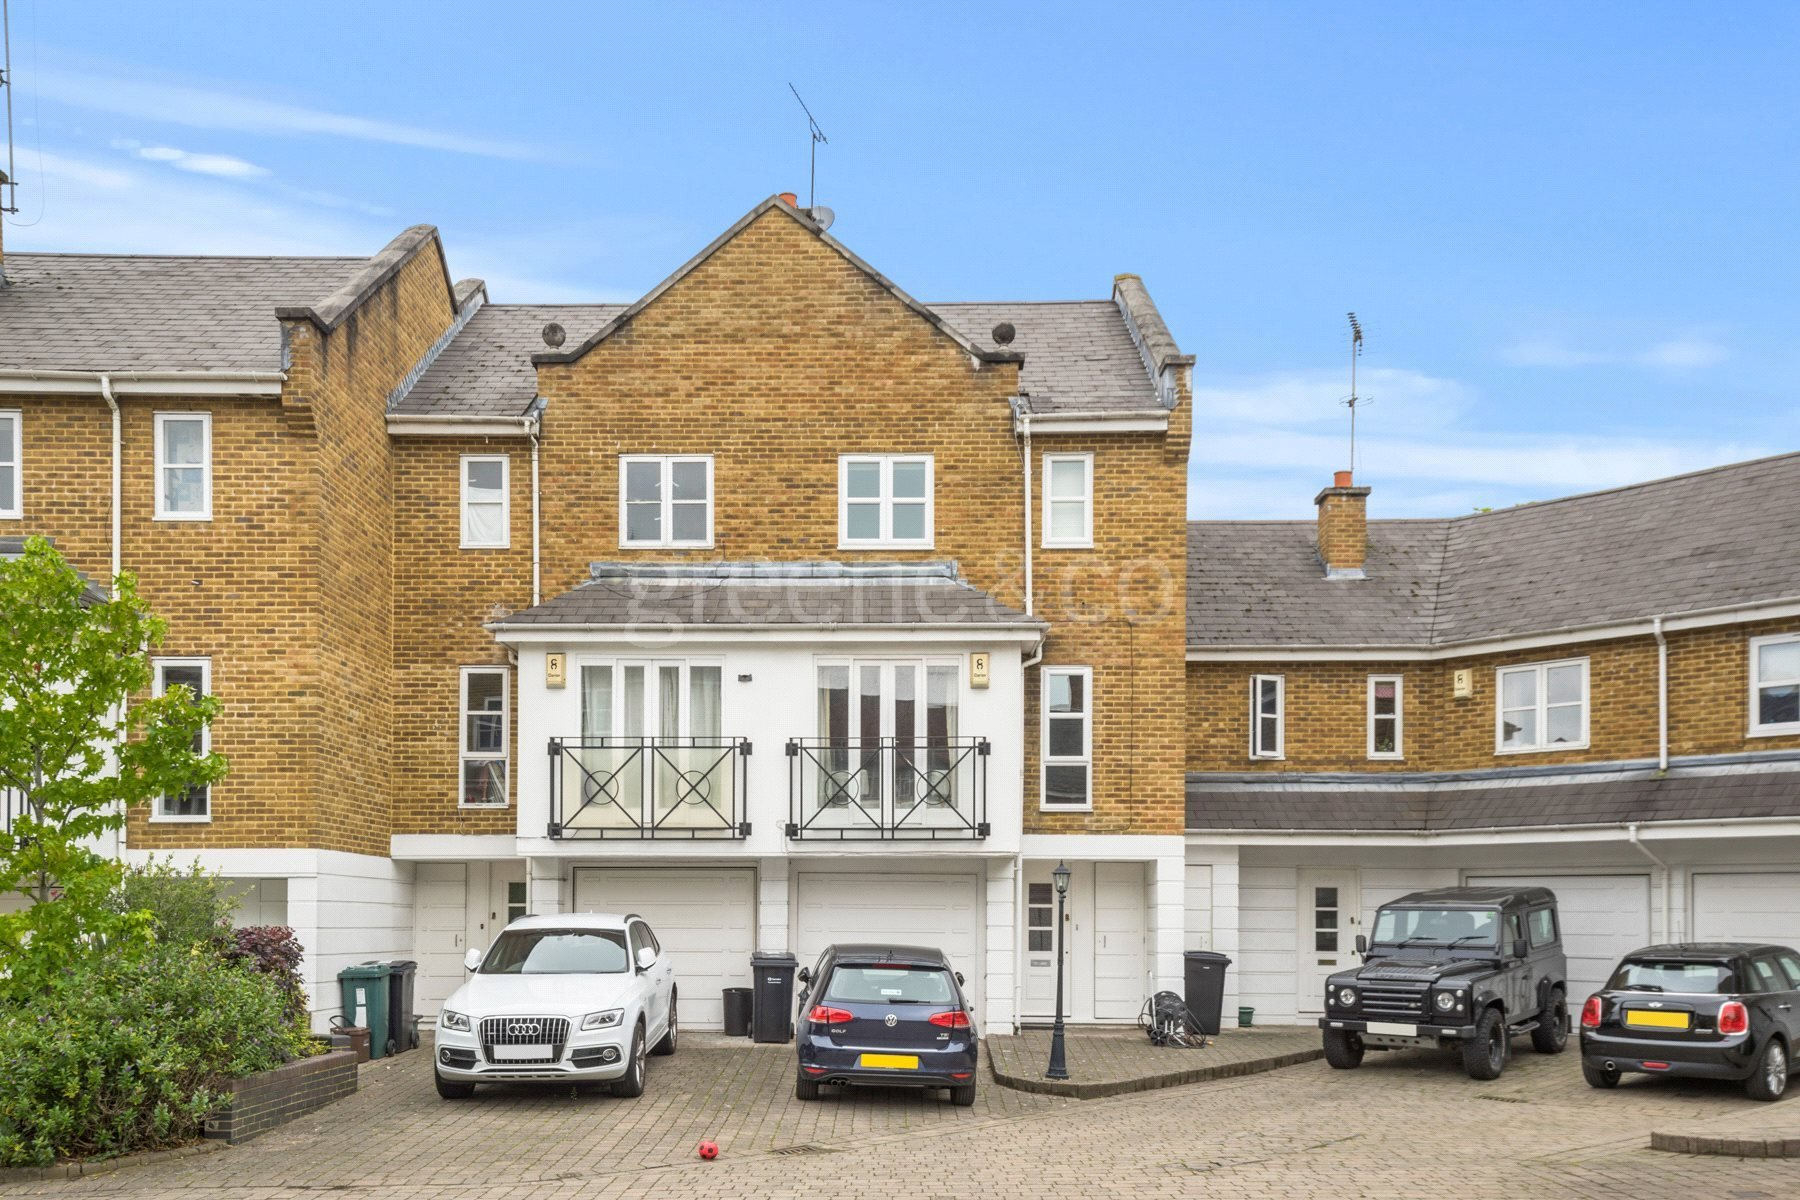 Best 4 Bedroom House For Sale In Berridge Mews West Hampstead London Nw6 Wes170407 Greene Co With Pictures